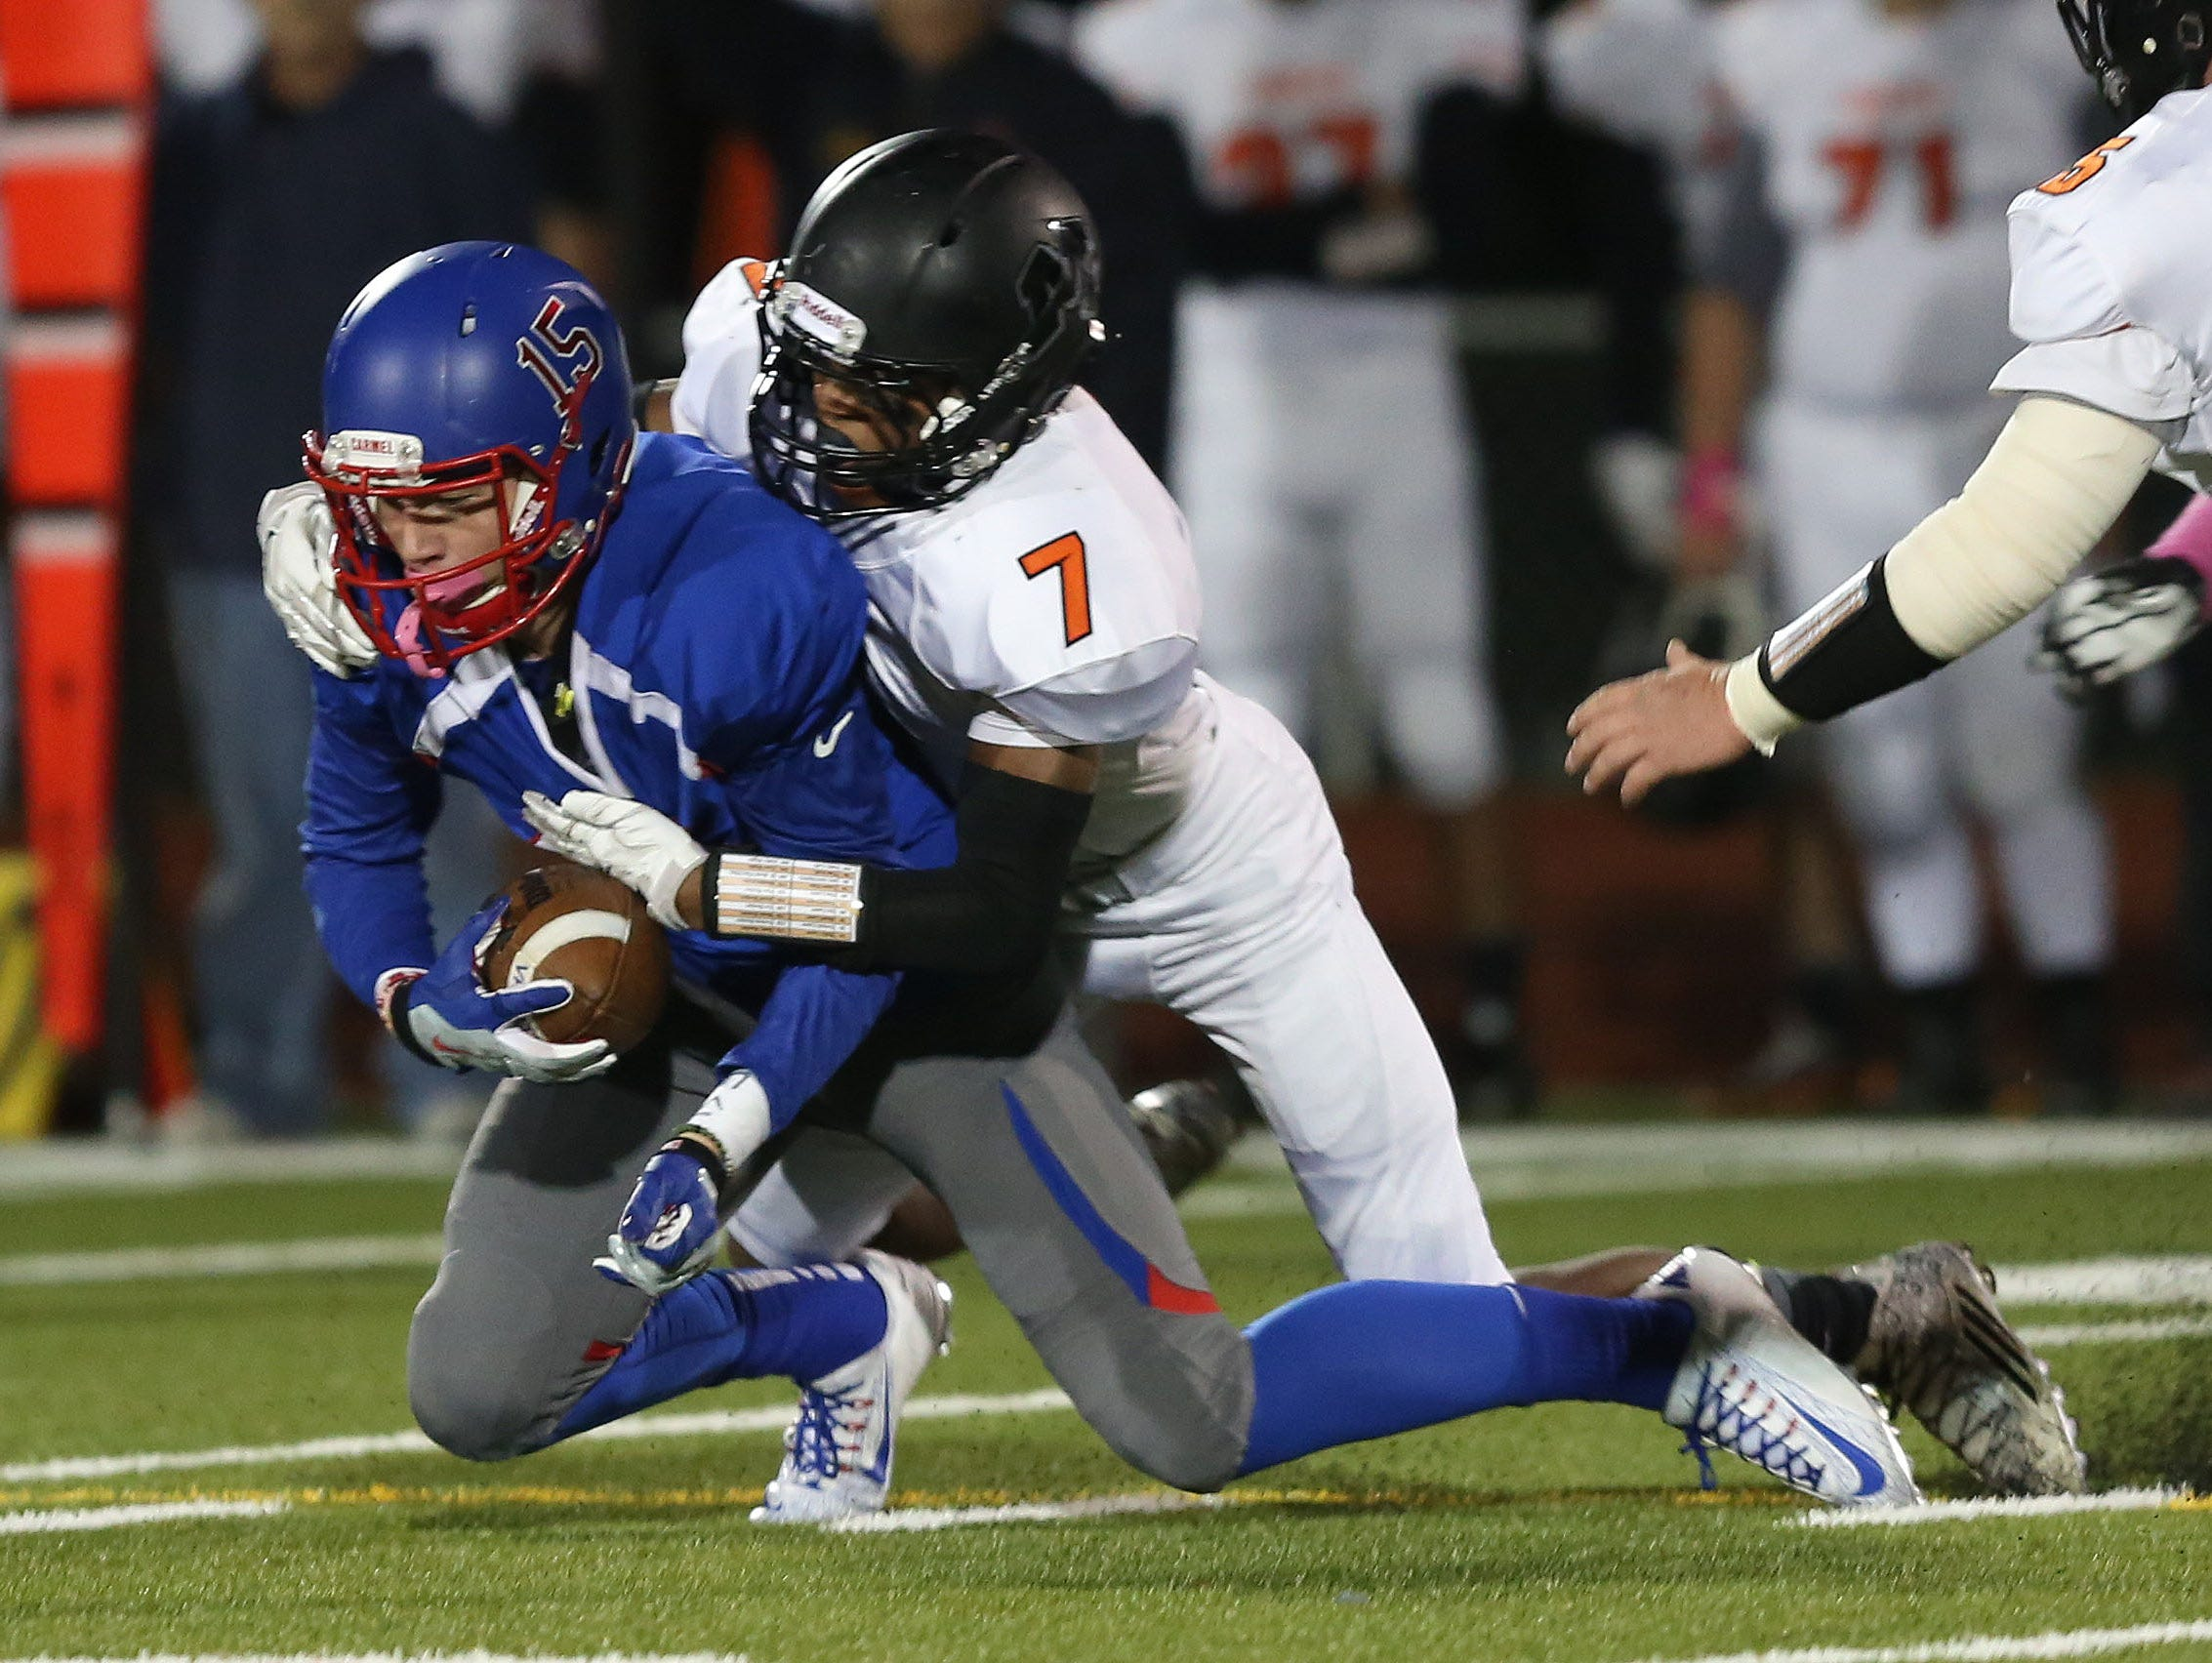 Carmel's Ryan Sullivan (15) gets tackled by Mamaroneck's Julian Haughton (7) after a first half catch and run during a boys football playoff game at Carmel High School Oct. 16, 2015.